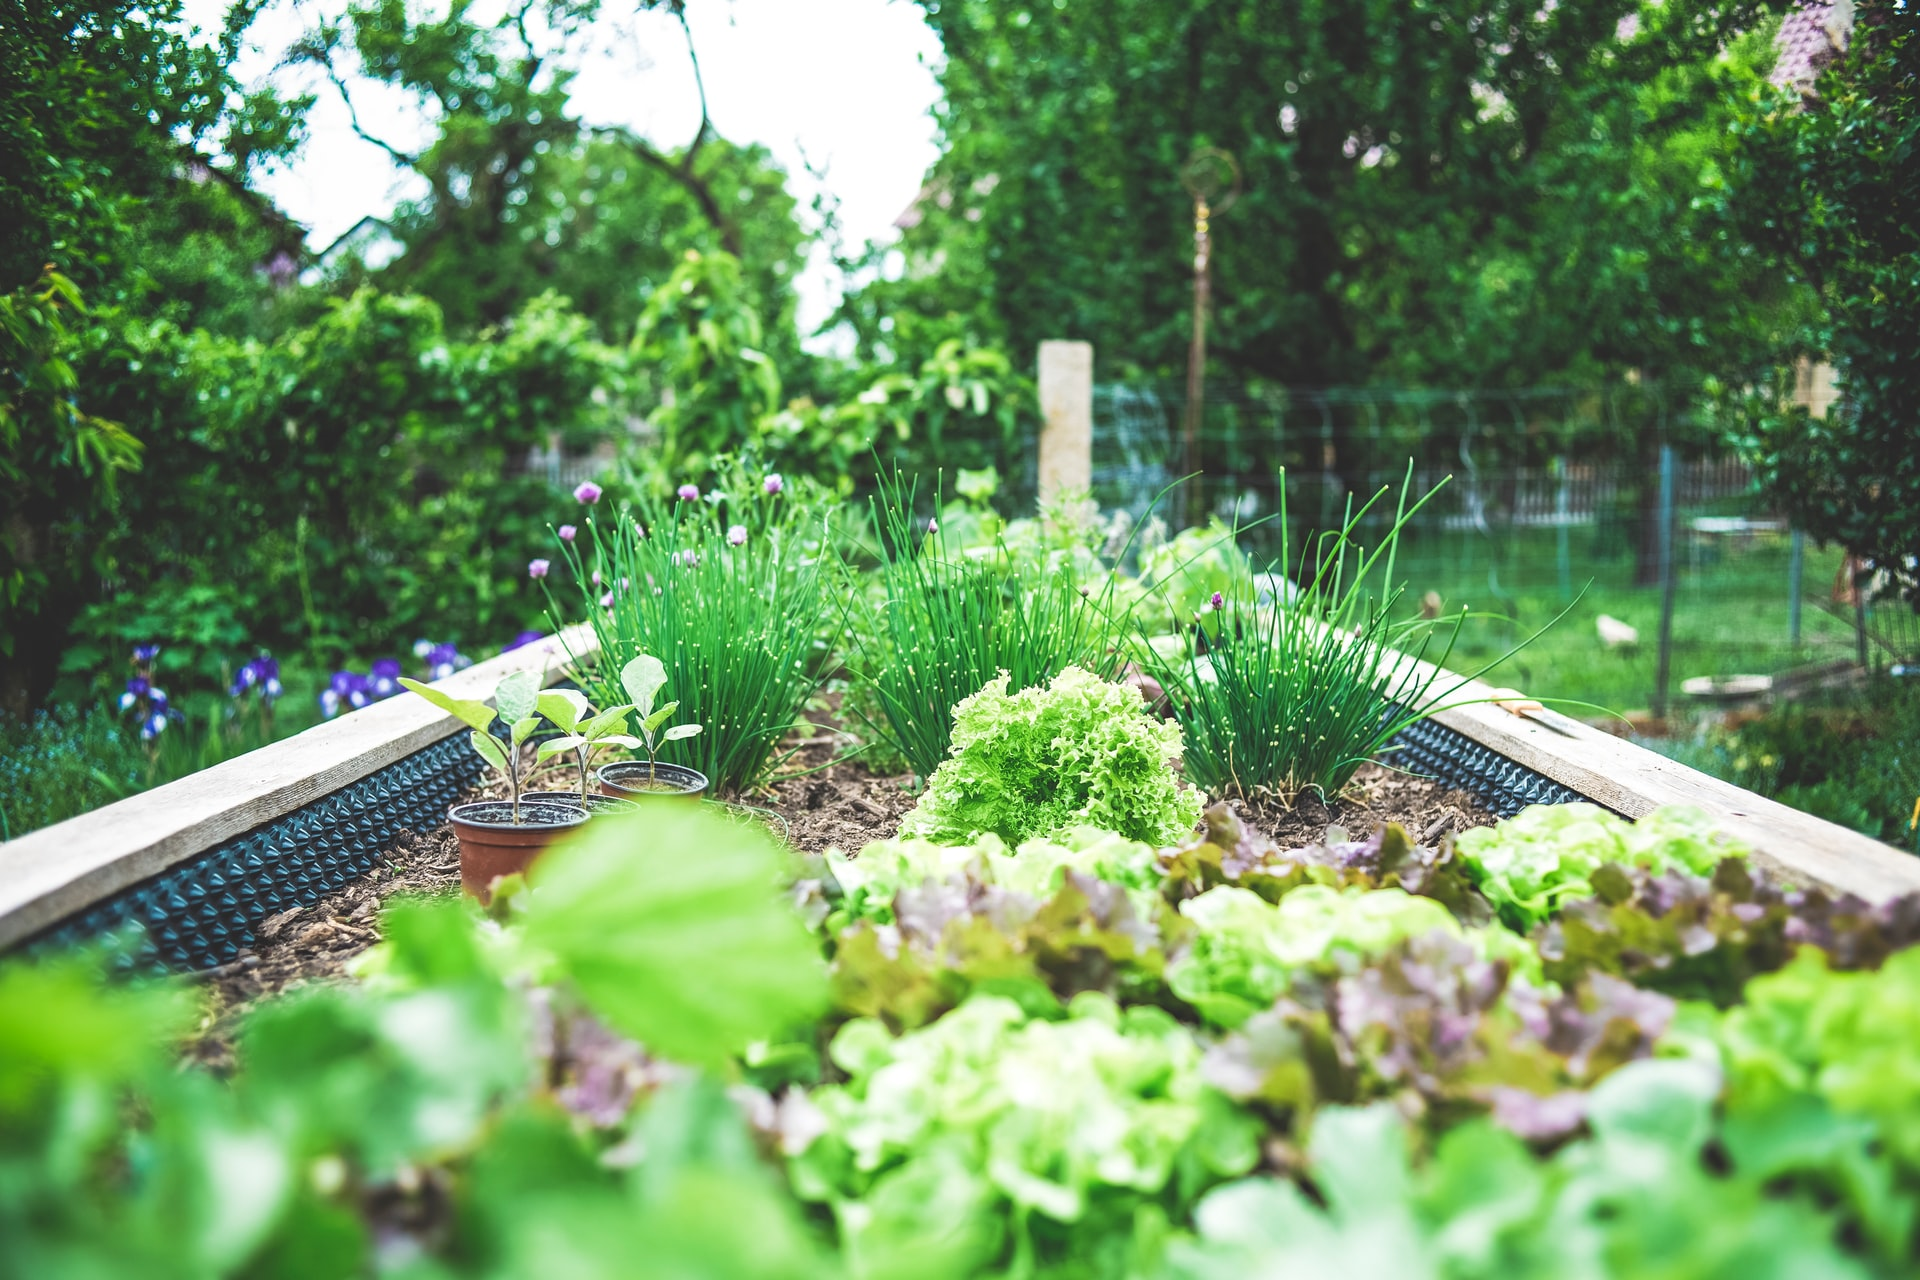 15 Garden Vegetable Protection Tips for Budding Growers